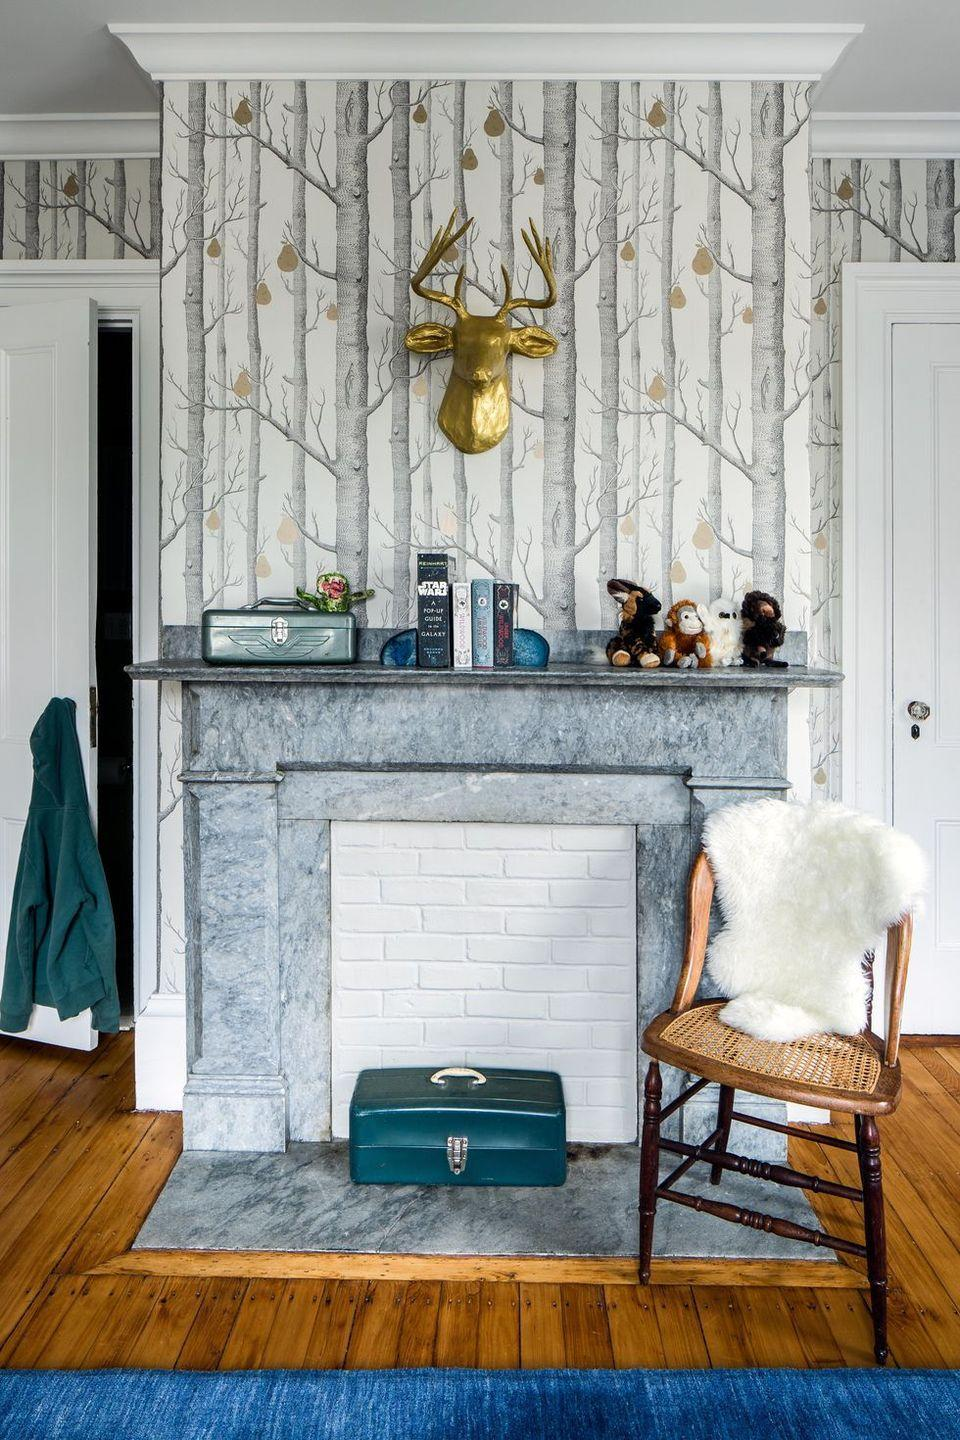 """<p>This <a href=""""https://www.elledecor.com/design-decorate/house-interiors/a36721200/cecilia-casagrande-brookline-home/"""" rel=""""nofollow noopener"""" target=""""_blank"""" data-ylk=""""slk:Victorian house designed by Cecilia Casagrande"""" class=""""link rapid-noclick-resp"""">Victorian house designed by Cecilia Casagrande</a> features decor reminding us of crisp, cool fall weather—from the white and gray woodsy wallpaper to the golden deer bust to the white sheepskin throw. </p>"""